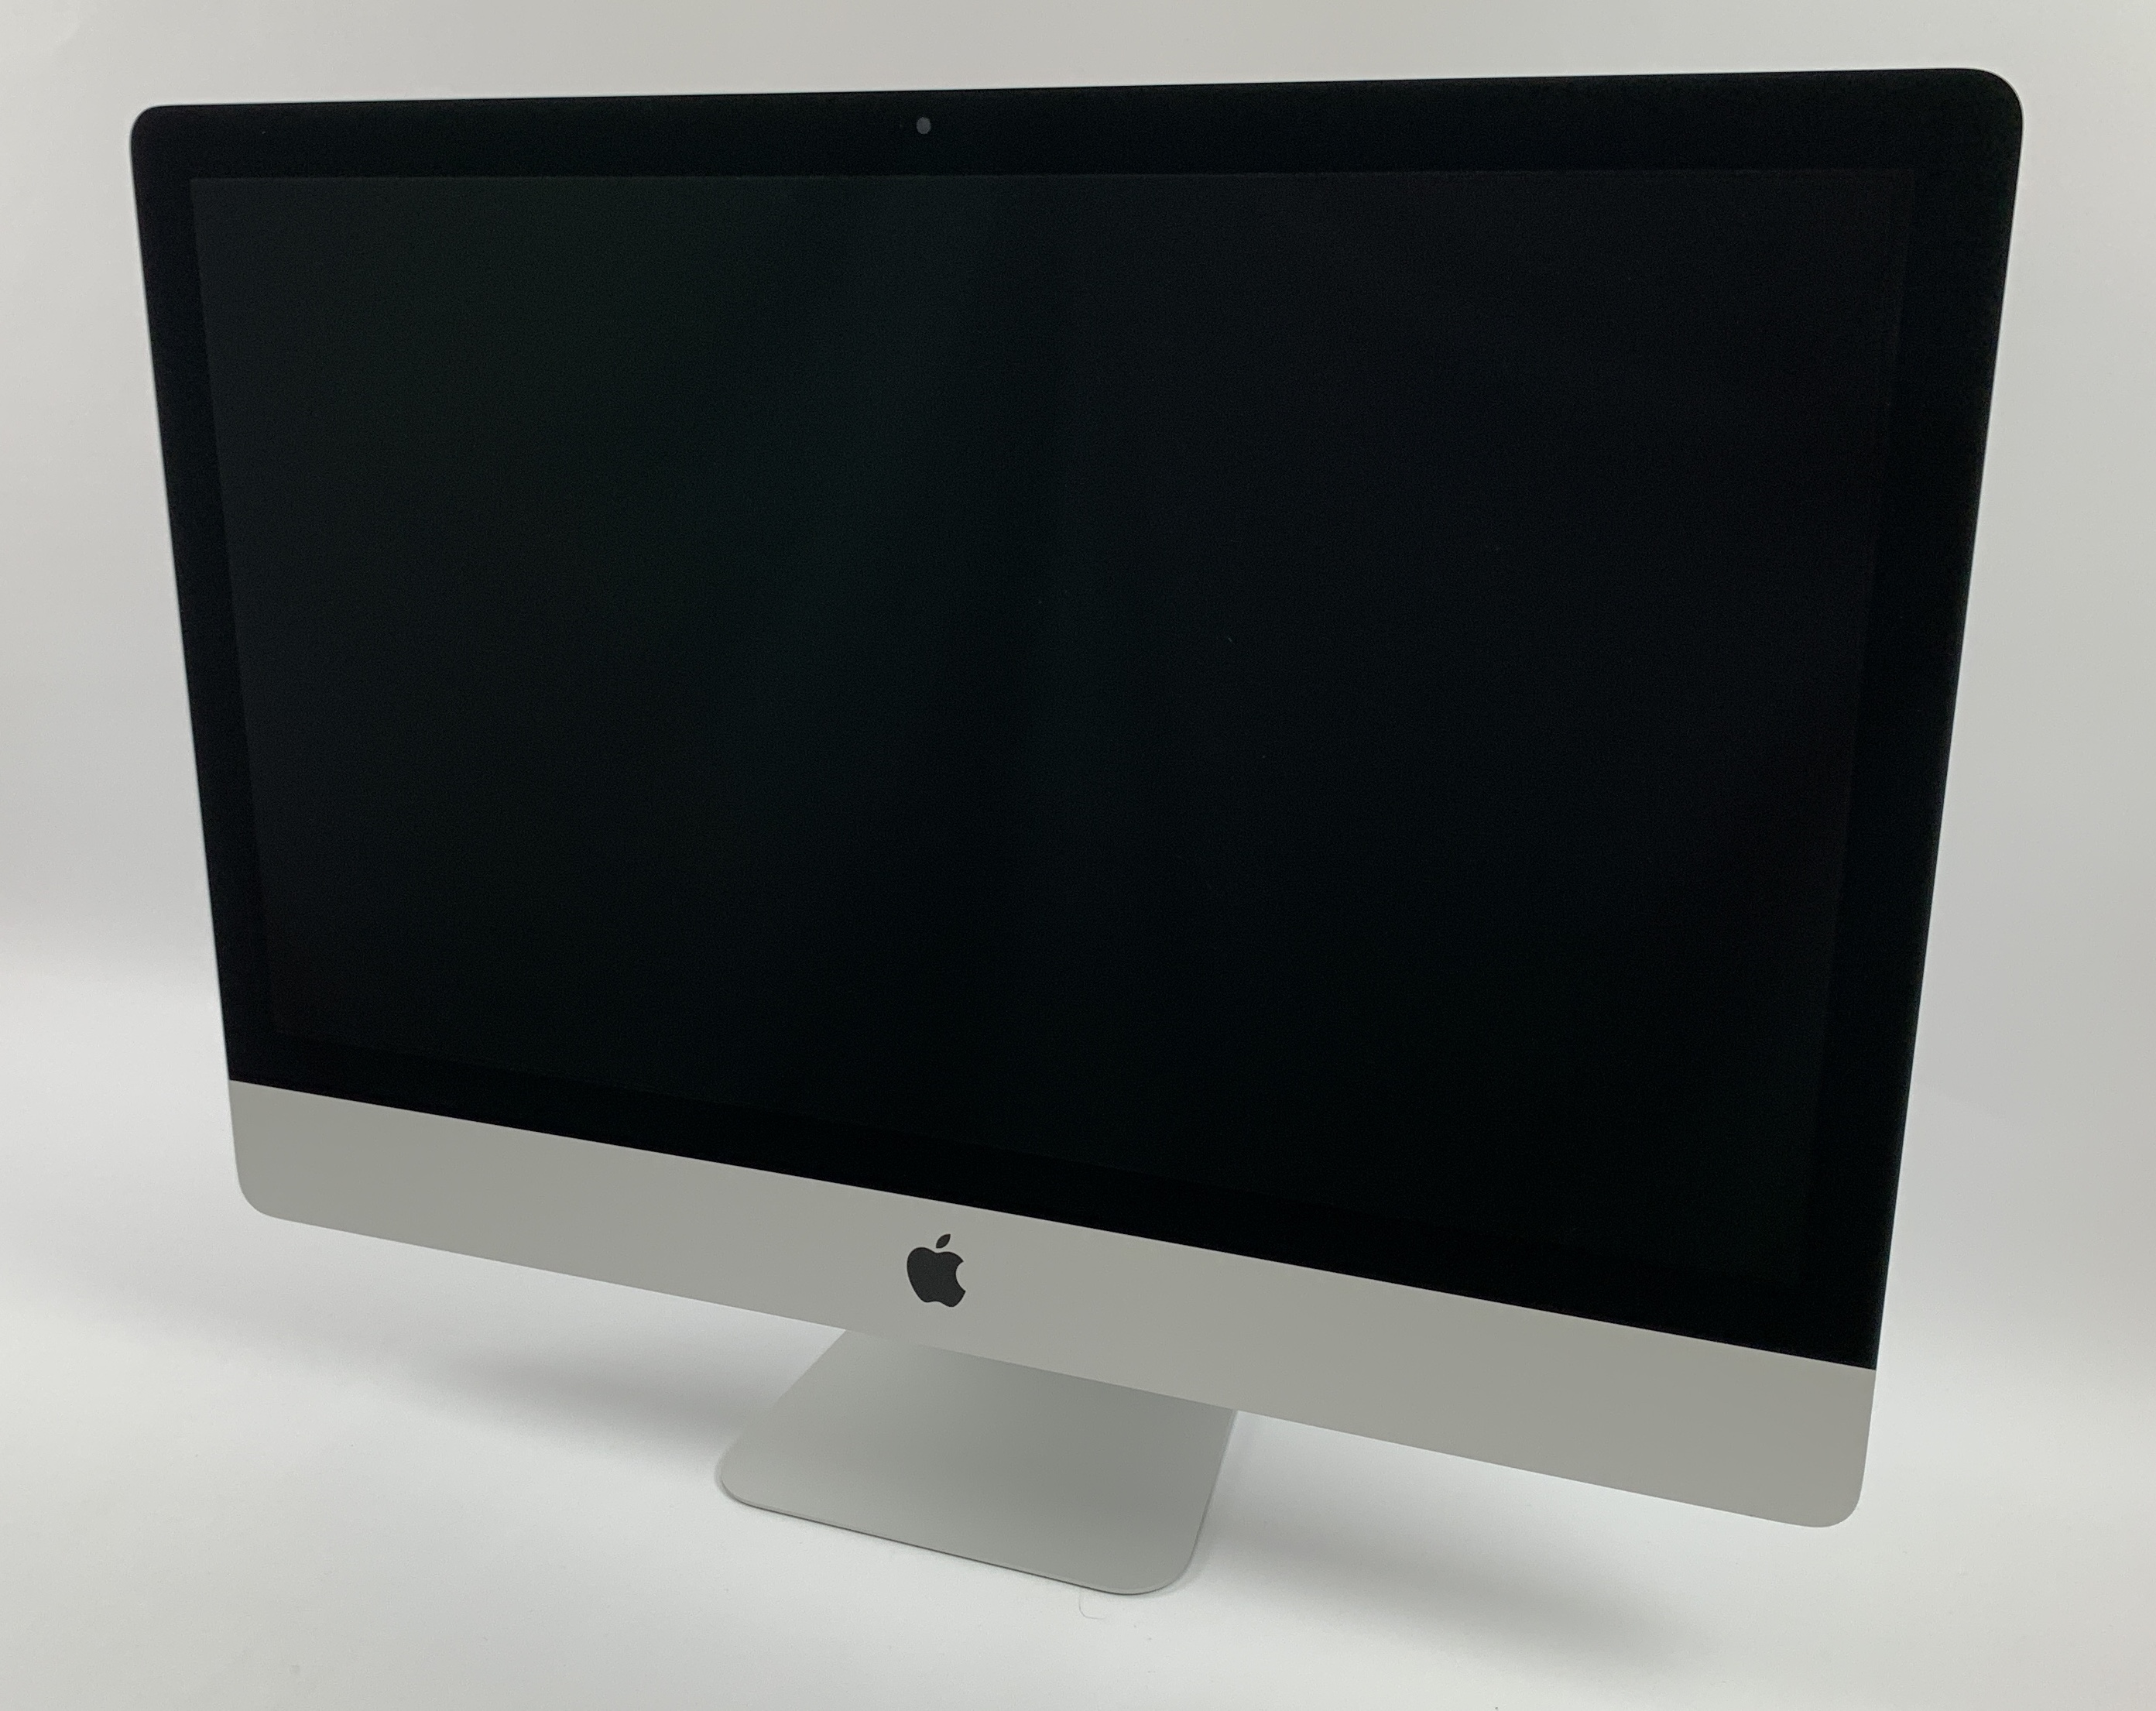 "iMac 21.5"" Retina 4K Early 2019 (Intel Quad-Core i3 3.6 GHz 32 GB RAM 1 TB SSD), Intel Quad-Core i3 3.6 GHz, 32 GB RAM, 2TB SSD (Third-Party), image 1"